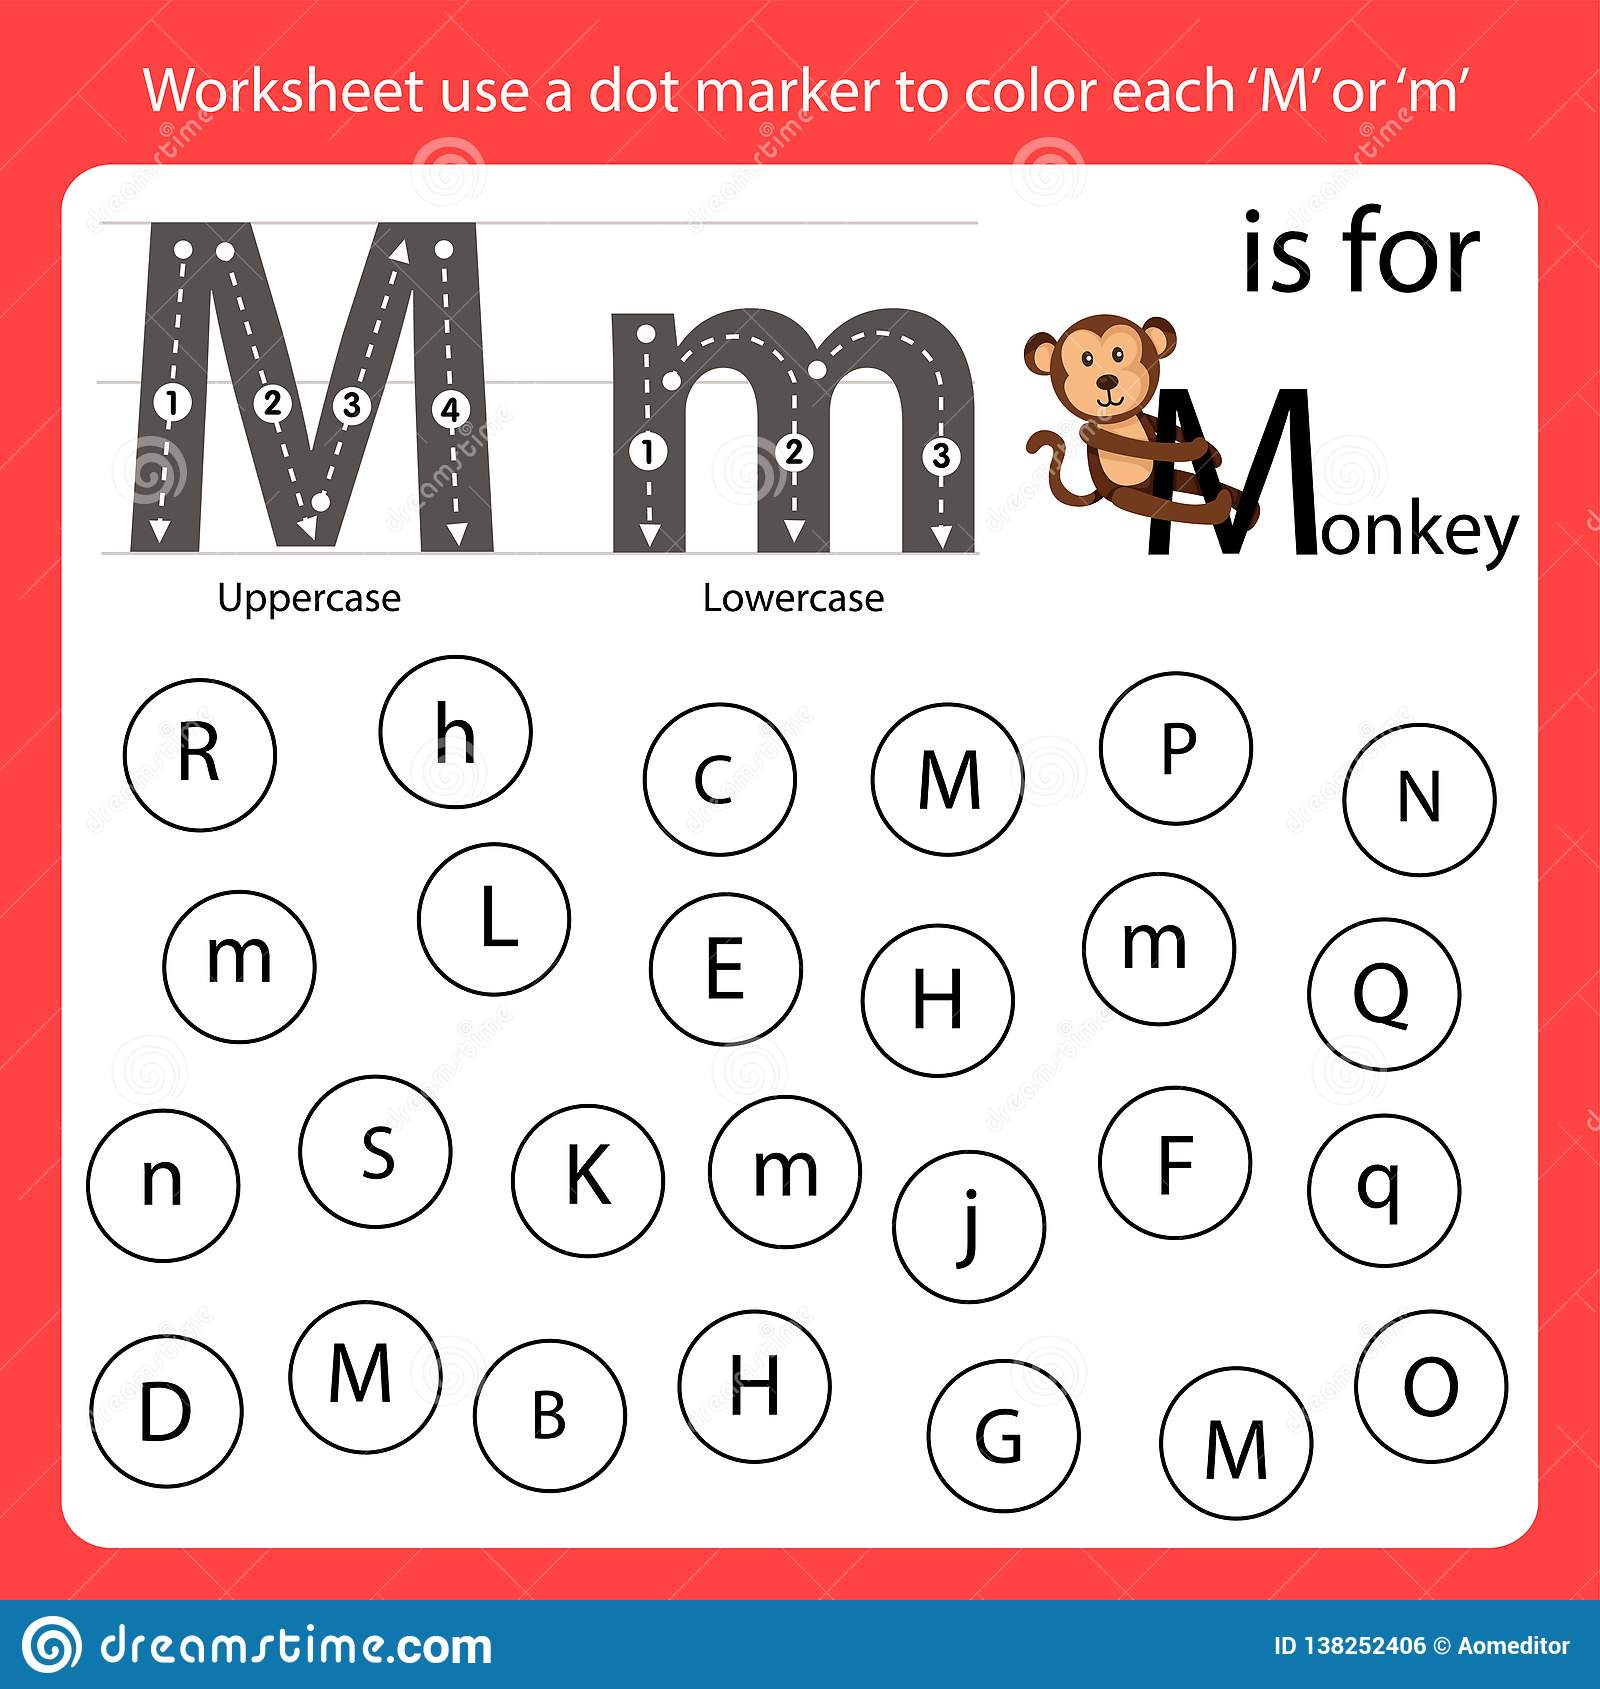 Find The Letter Worksheet Use A Dot Marker To Color Each M